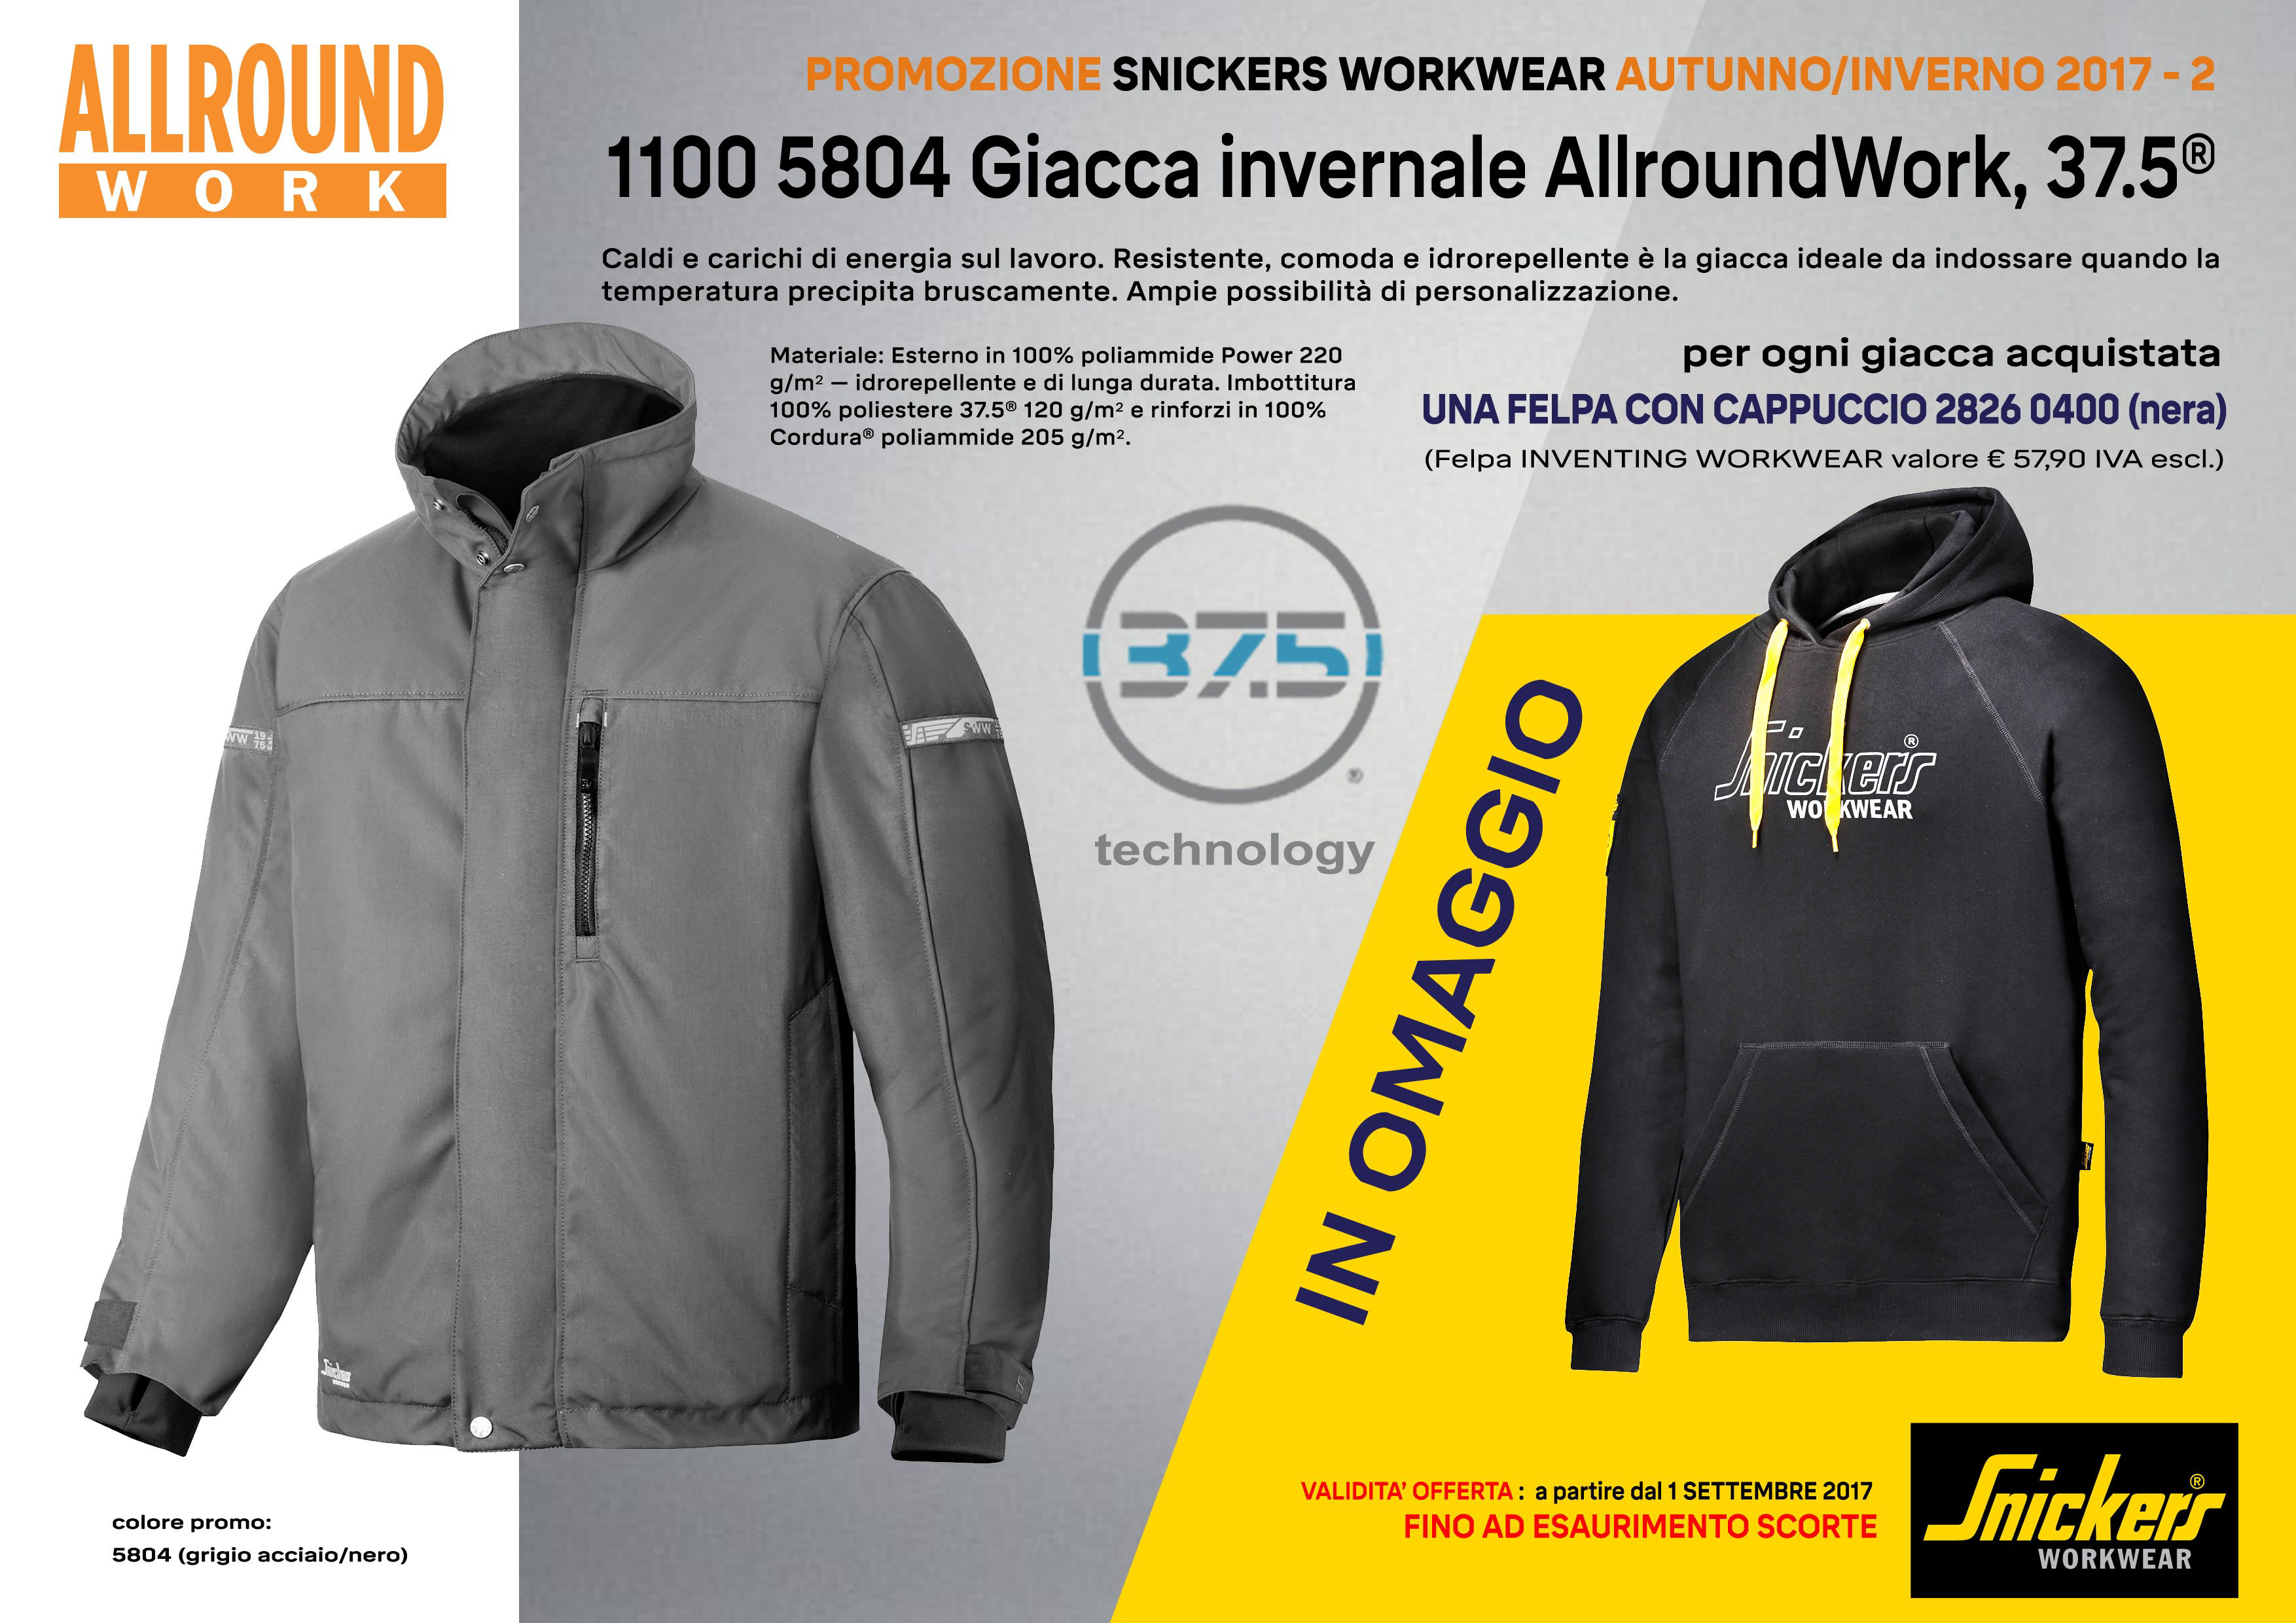 407743a91b91 giacca_snickers_boutiquedelchiodo Divisa_snickers_boutiquedelchiodo  pantaloni_snikers_boutiquedelchiodo